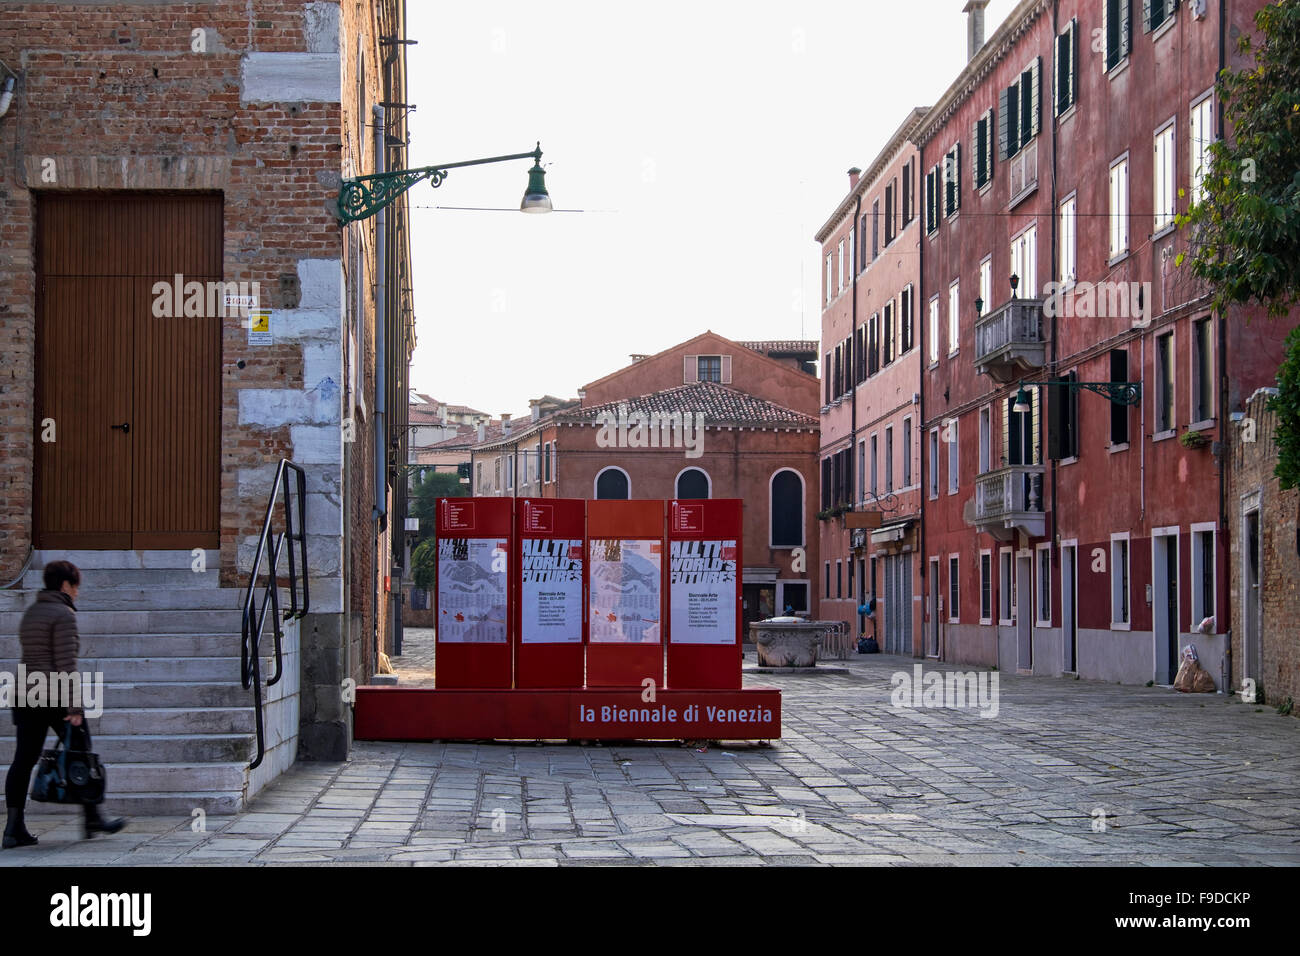 Venice, Castello. 2015 Venice Biennale Sign at entrance to Arsenale section of the International biennial art exhibition.La - Stock Image